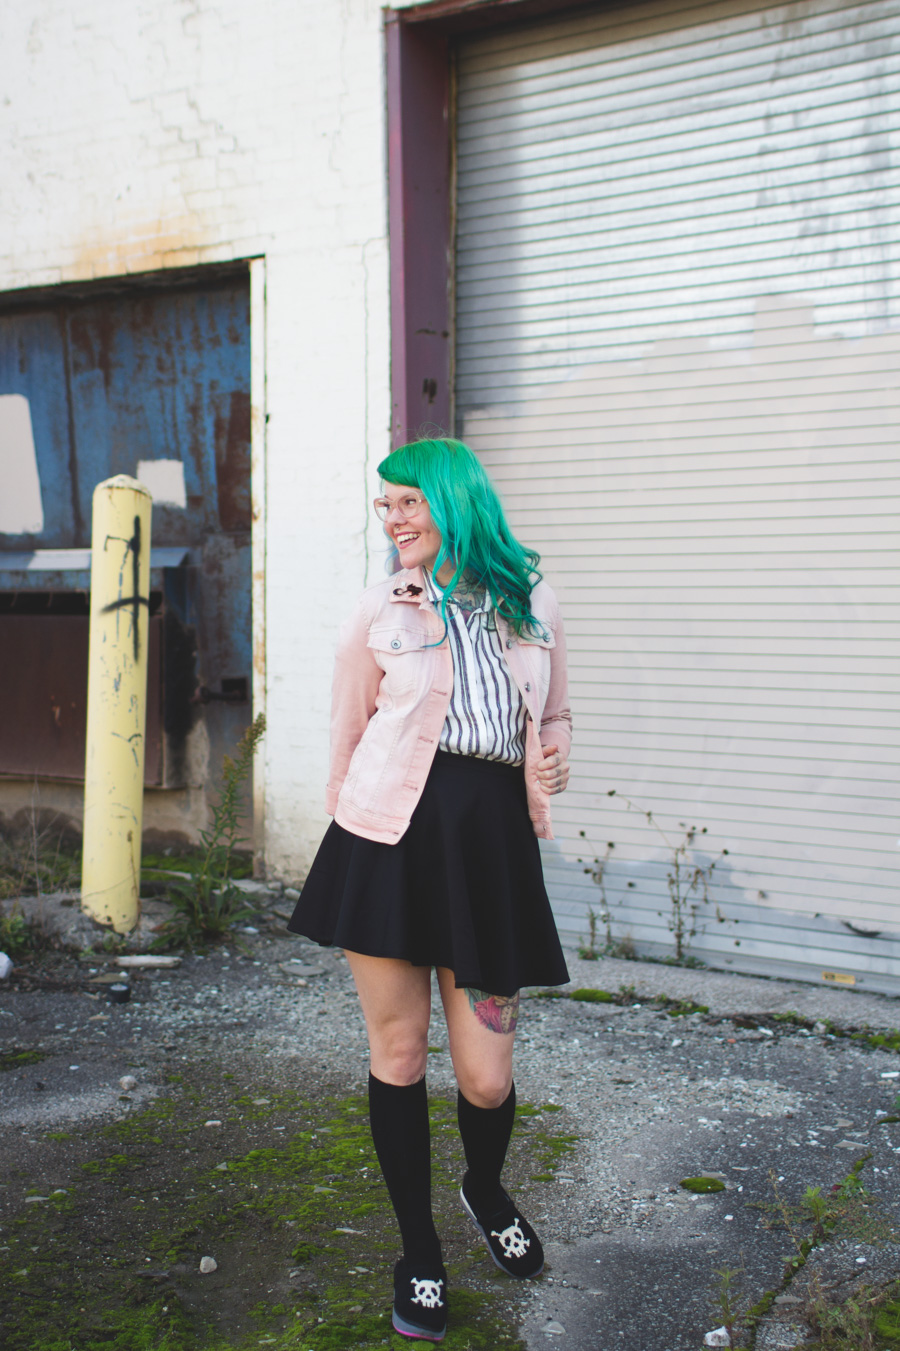 kaylah doolan, fashion blog, cleveland, blogger, ohio, green hair